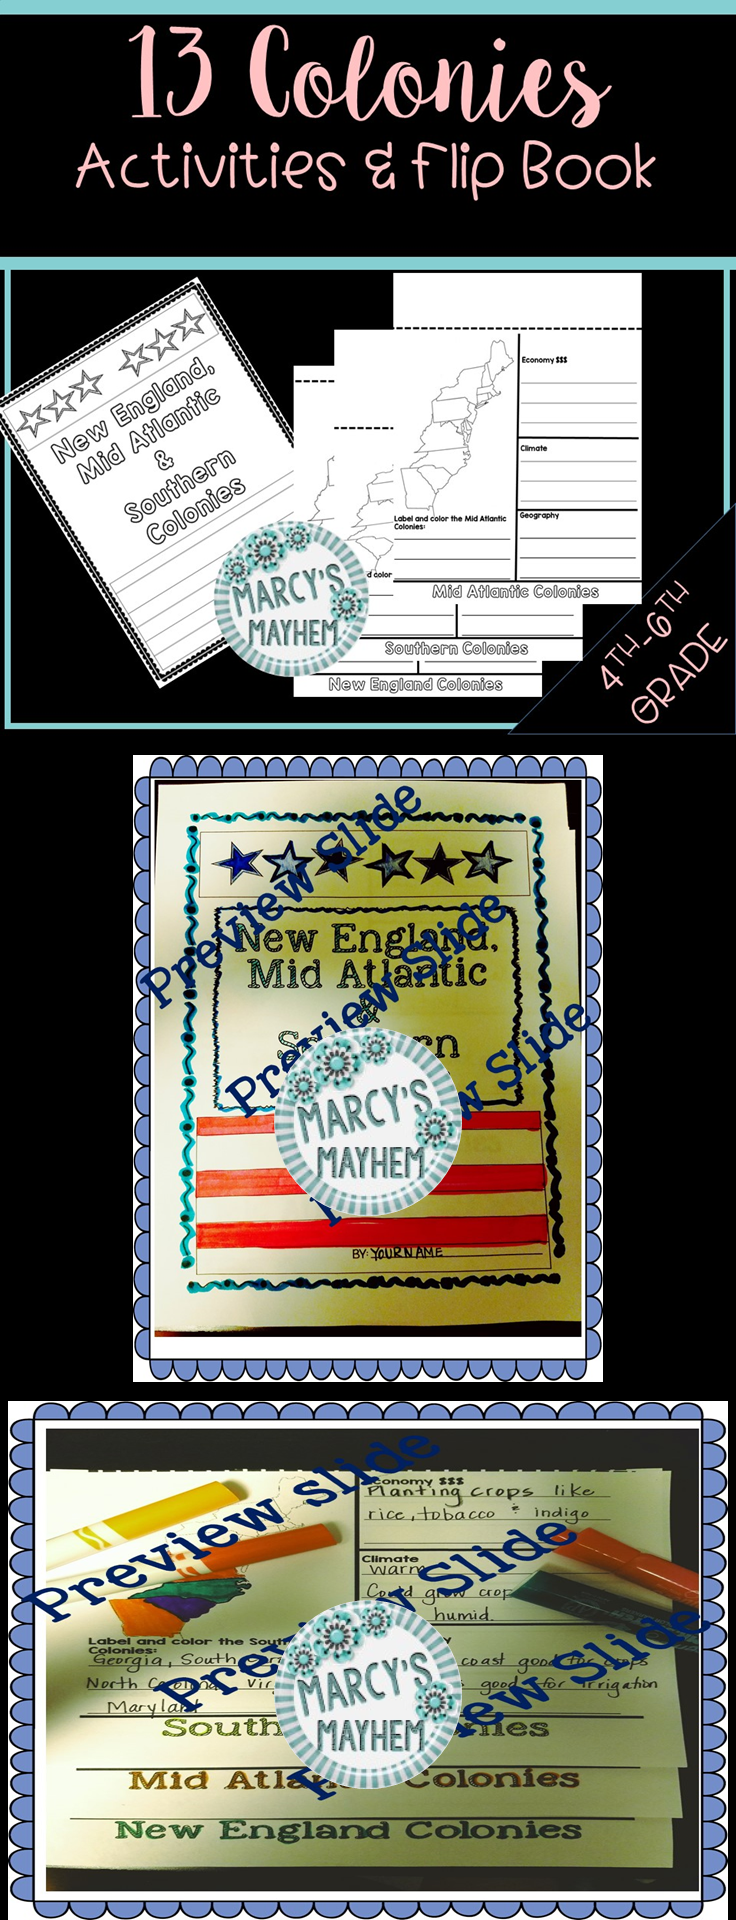 Workbooks new england colonies worksheets : 13 Colonies Activity Flip Book | Southern colonies, Flip books and ...